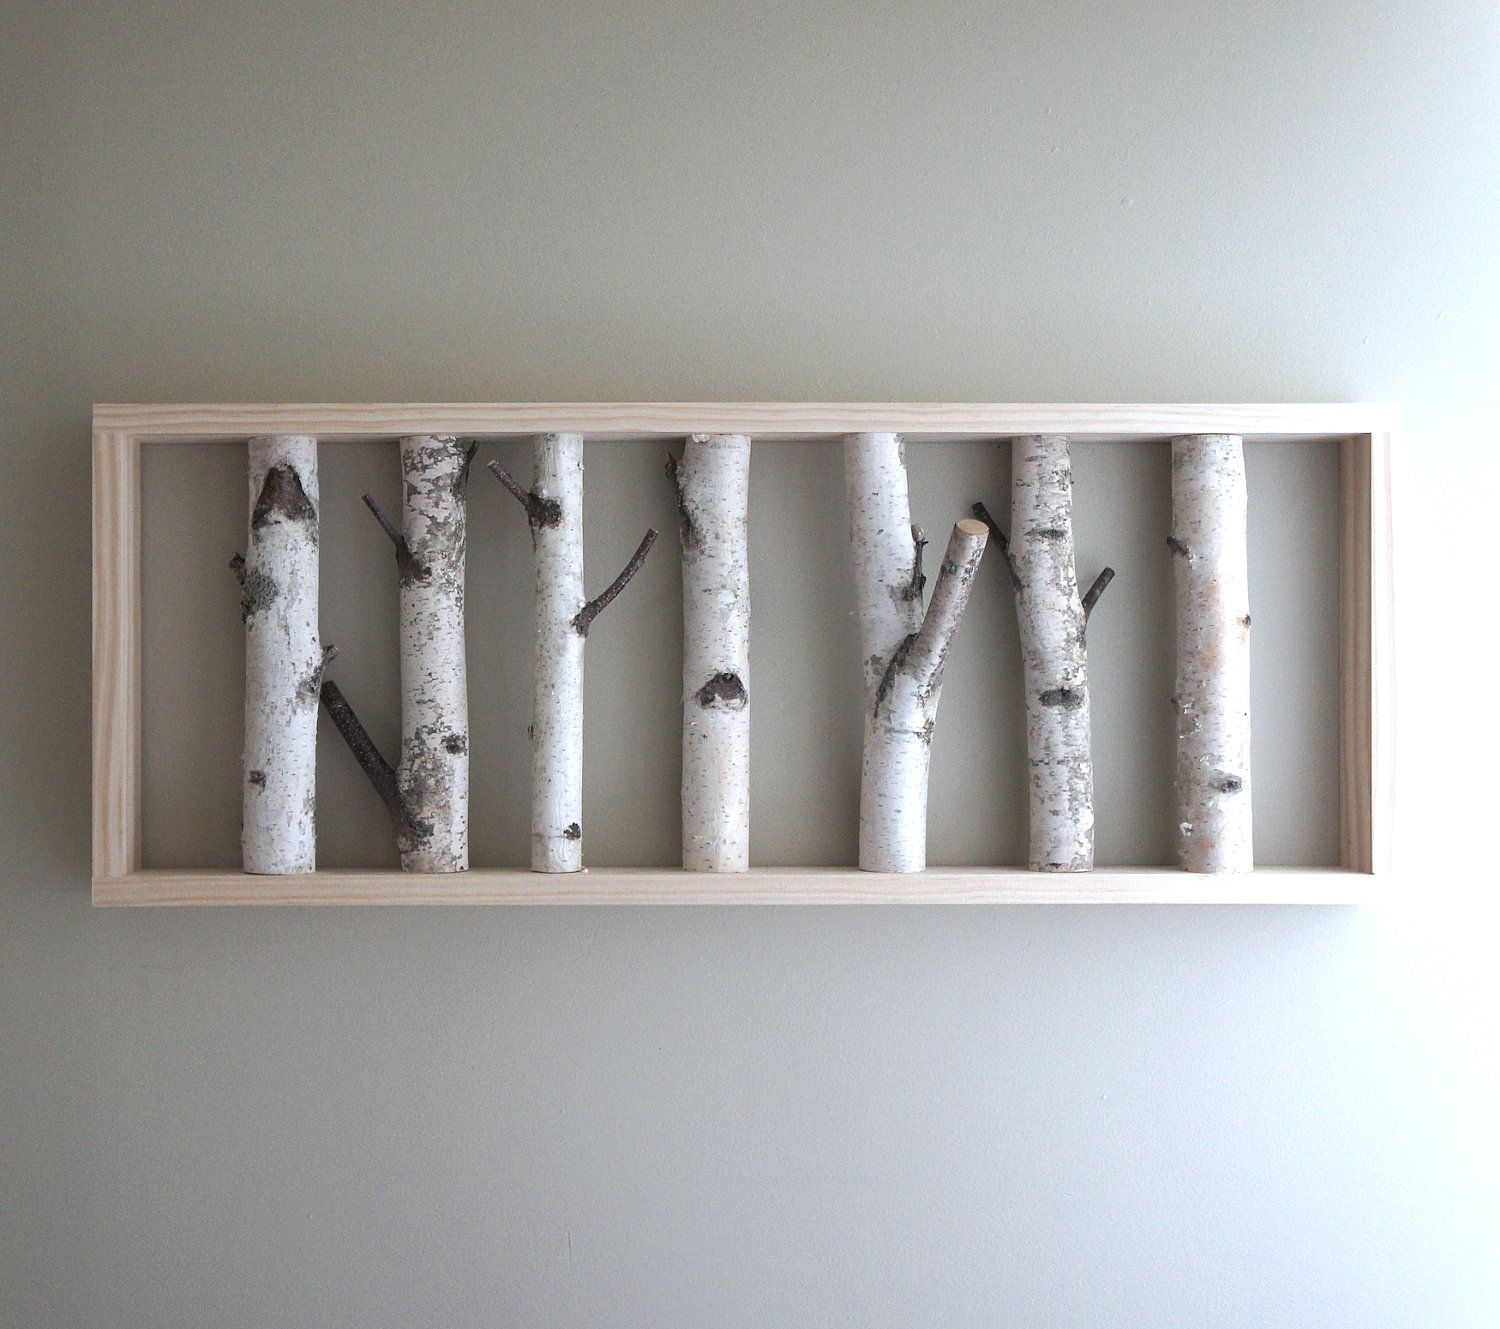 This Would Make An Awesome Coat Rack Get On It Micah White Birch Forest Natural White Birch Woods W Birch Tree Decor Rustic Wall Decor Forest Wall Art